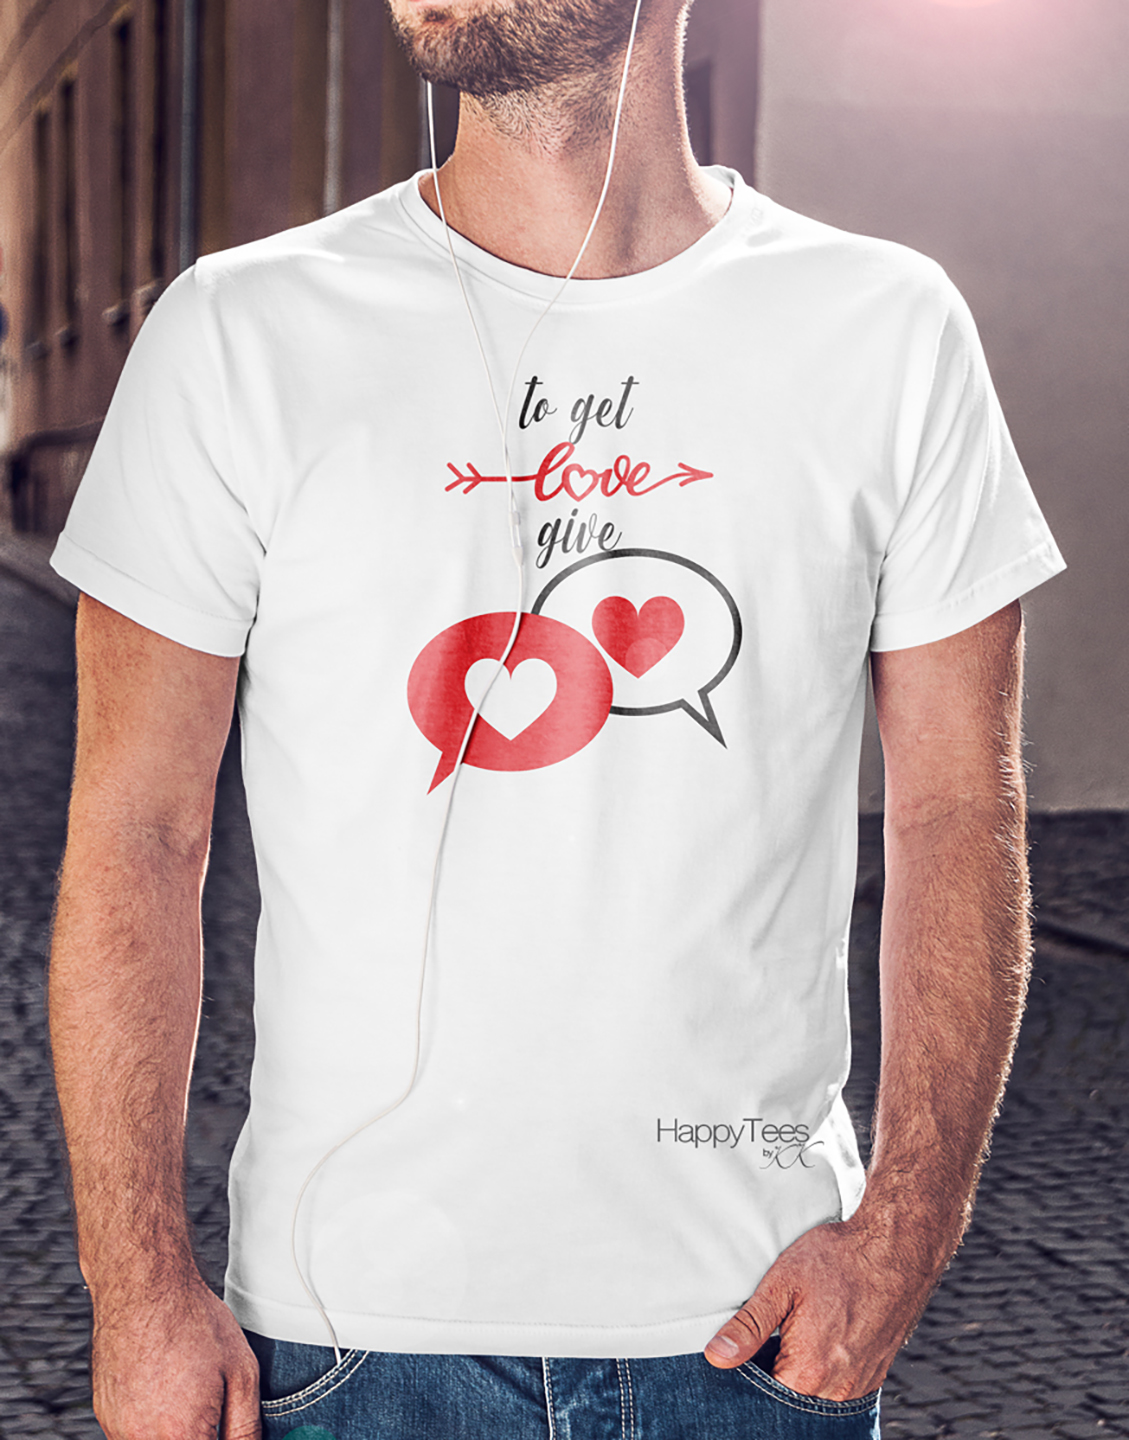 heart_chat_happy_tees